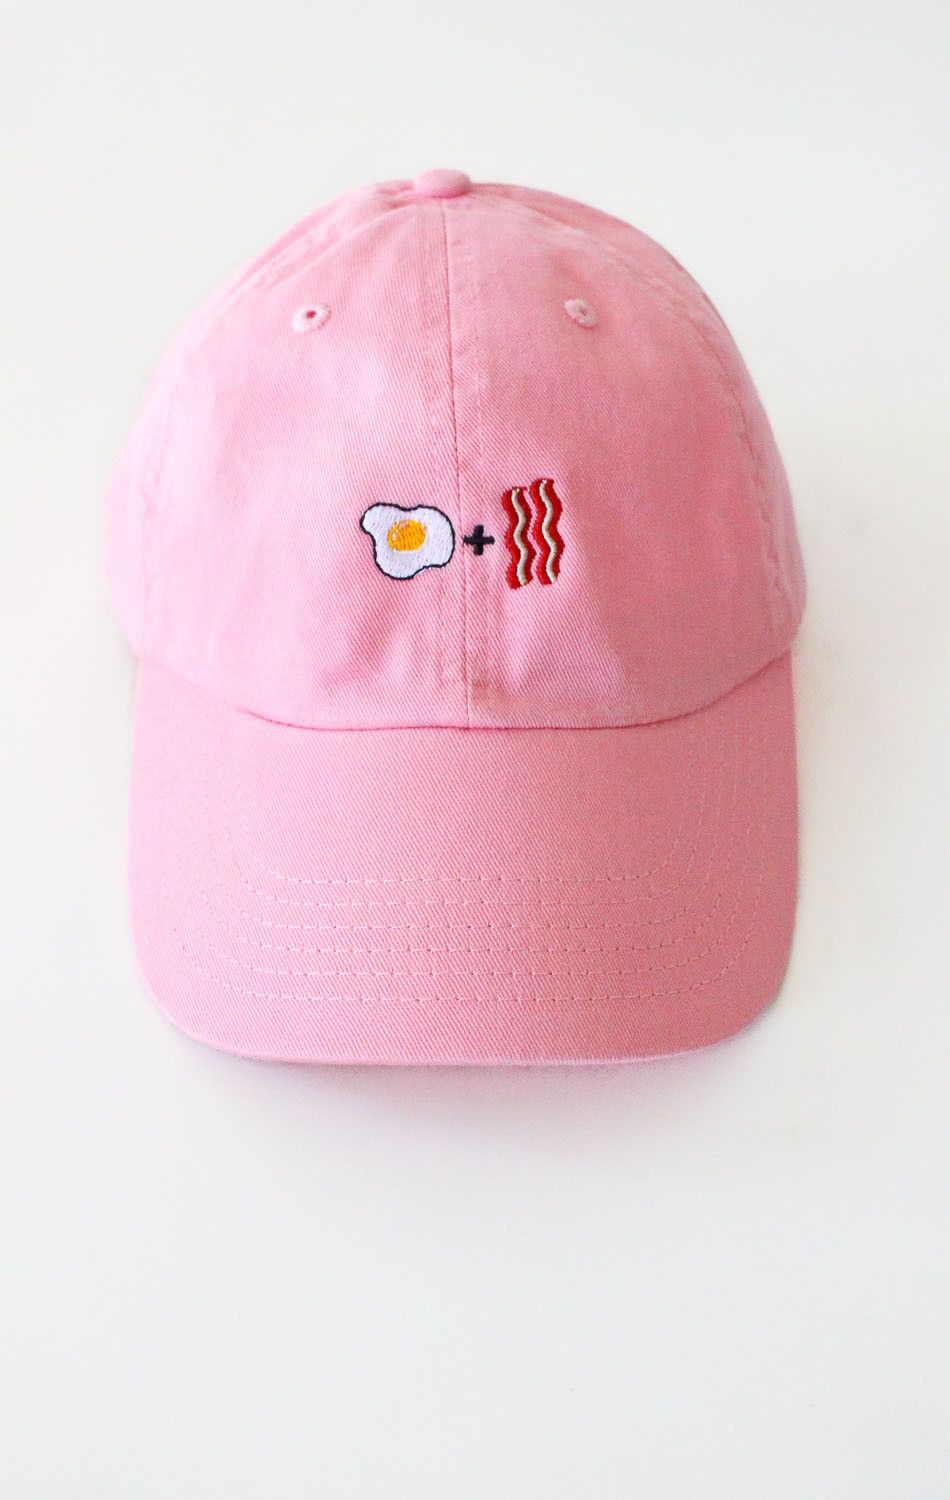 b38efd577 Description Details: Six panel cap in pink with 'Egg + Bacon' embroidery &  adjustable back with tri-glide buckle. Brand: NYCT Clothing. 100% Chino  Twill.